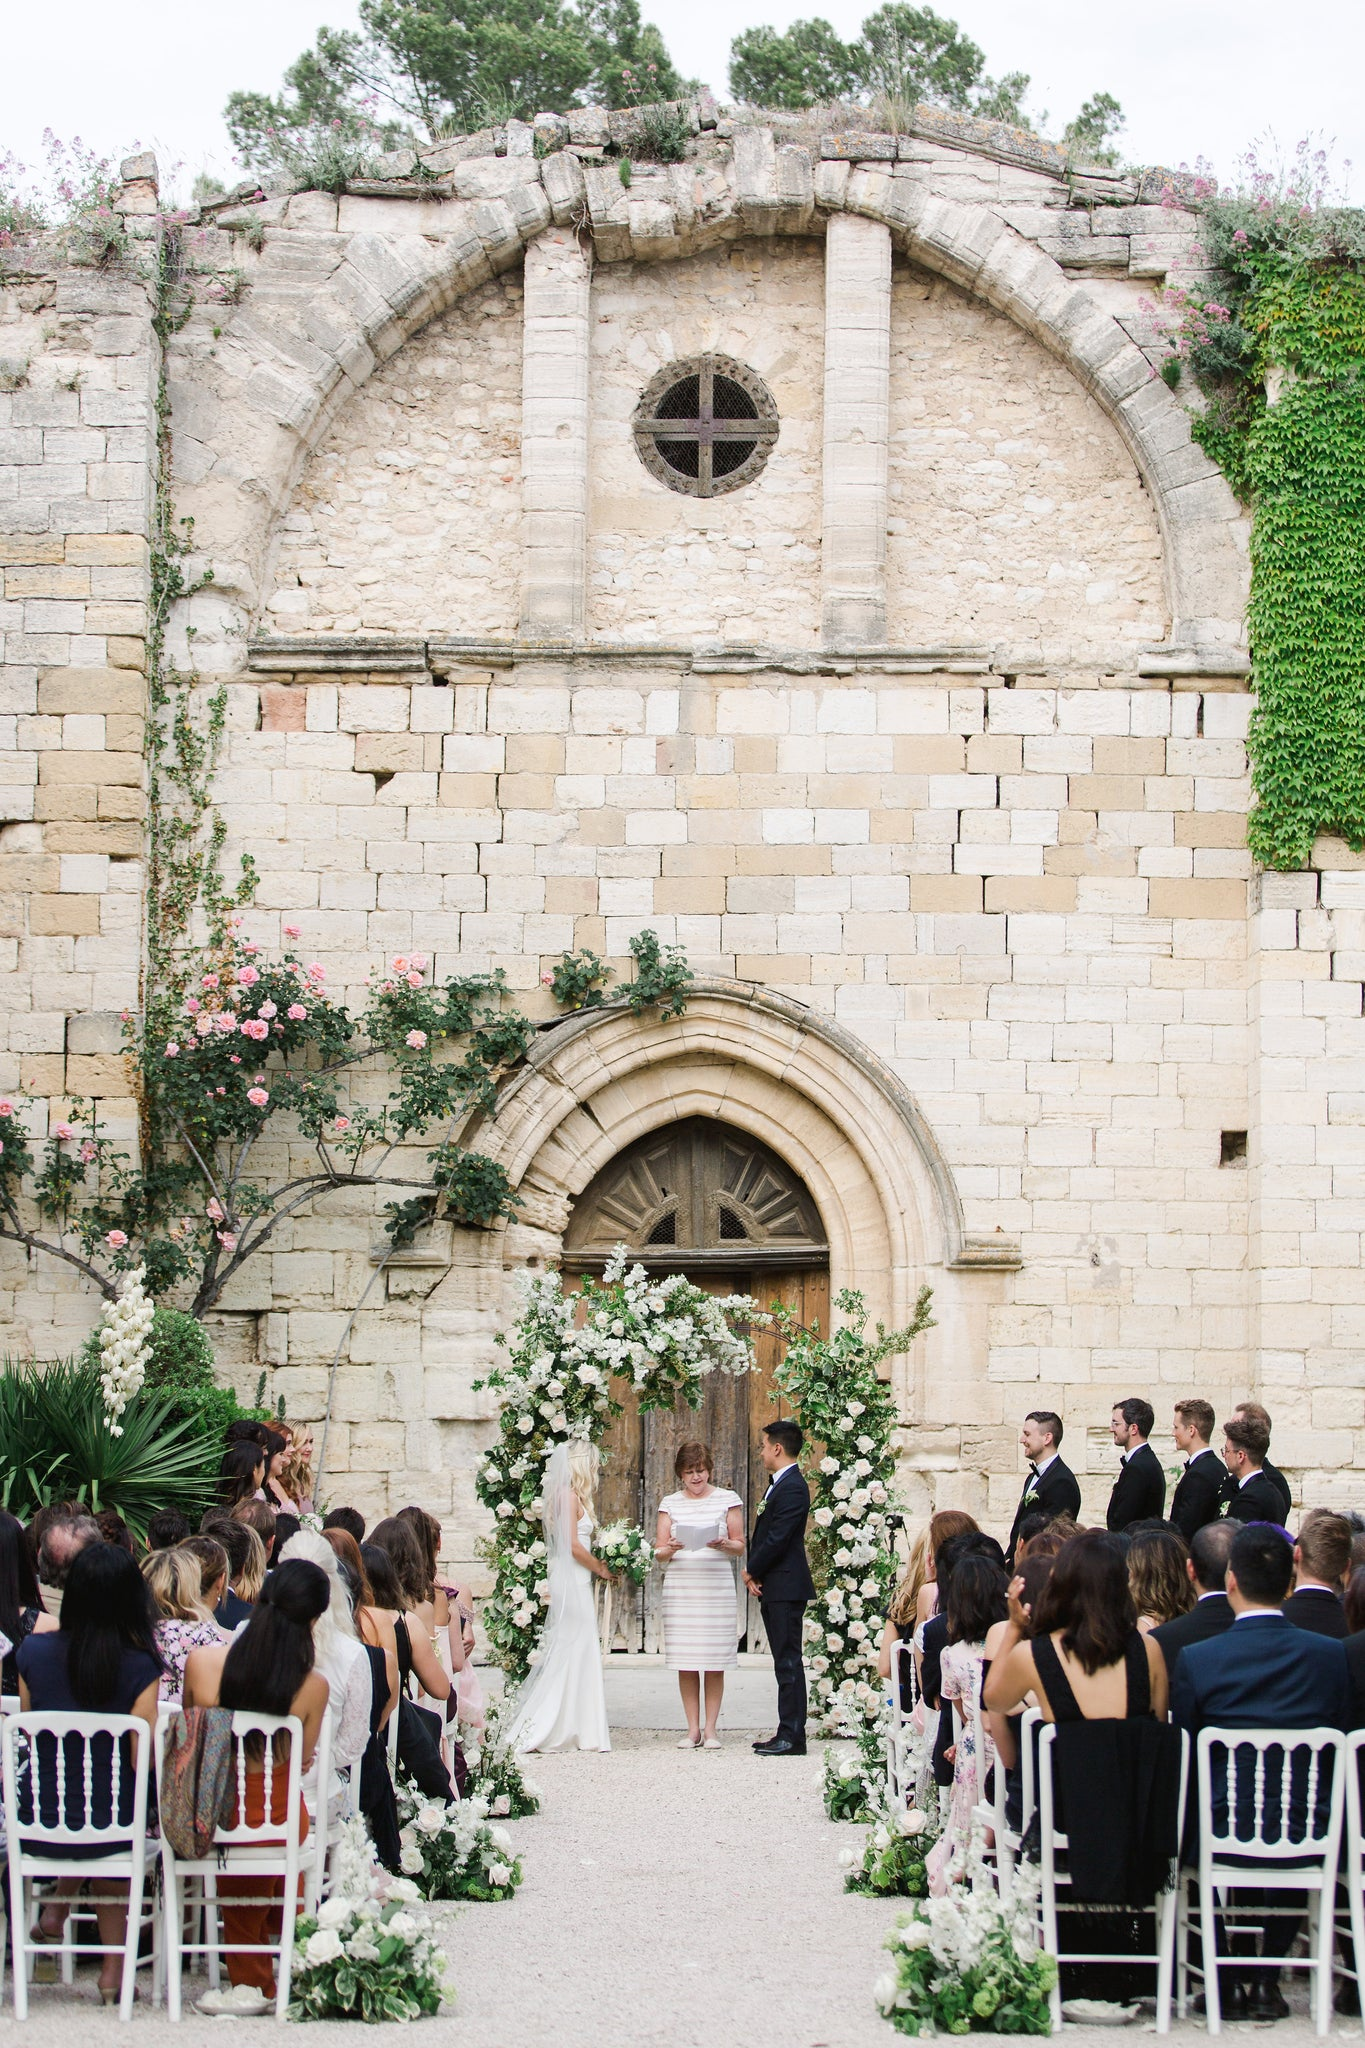 Katie Dean + Jon Tam Destination wedding, Provence, France Wedding, ceremony location